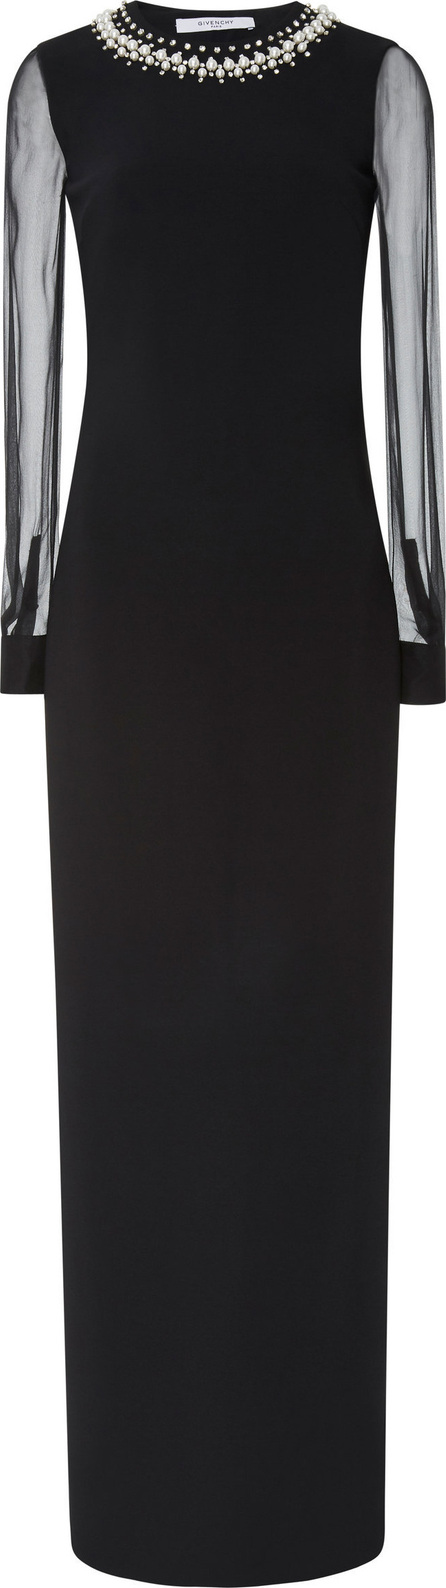 Givenchy Embellished Tulle-Paneled Crepe Gown